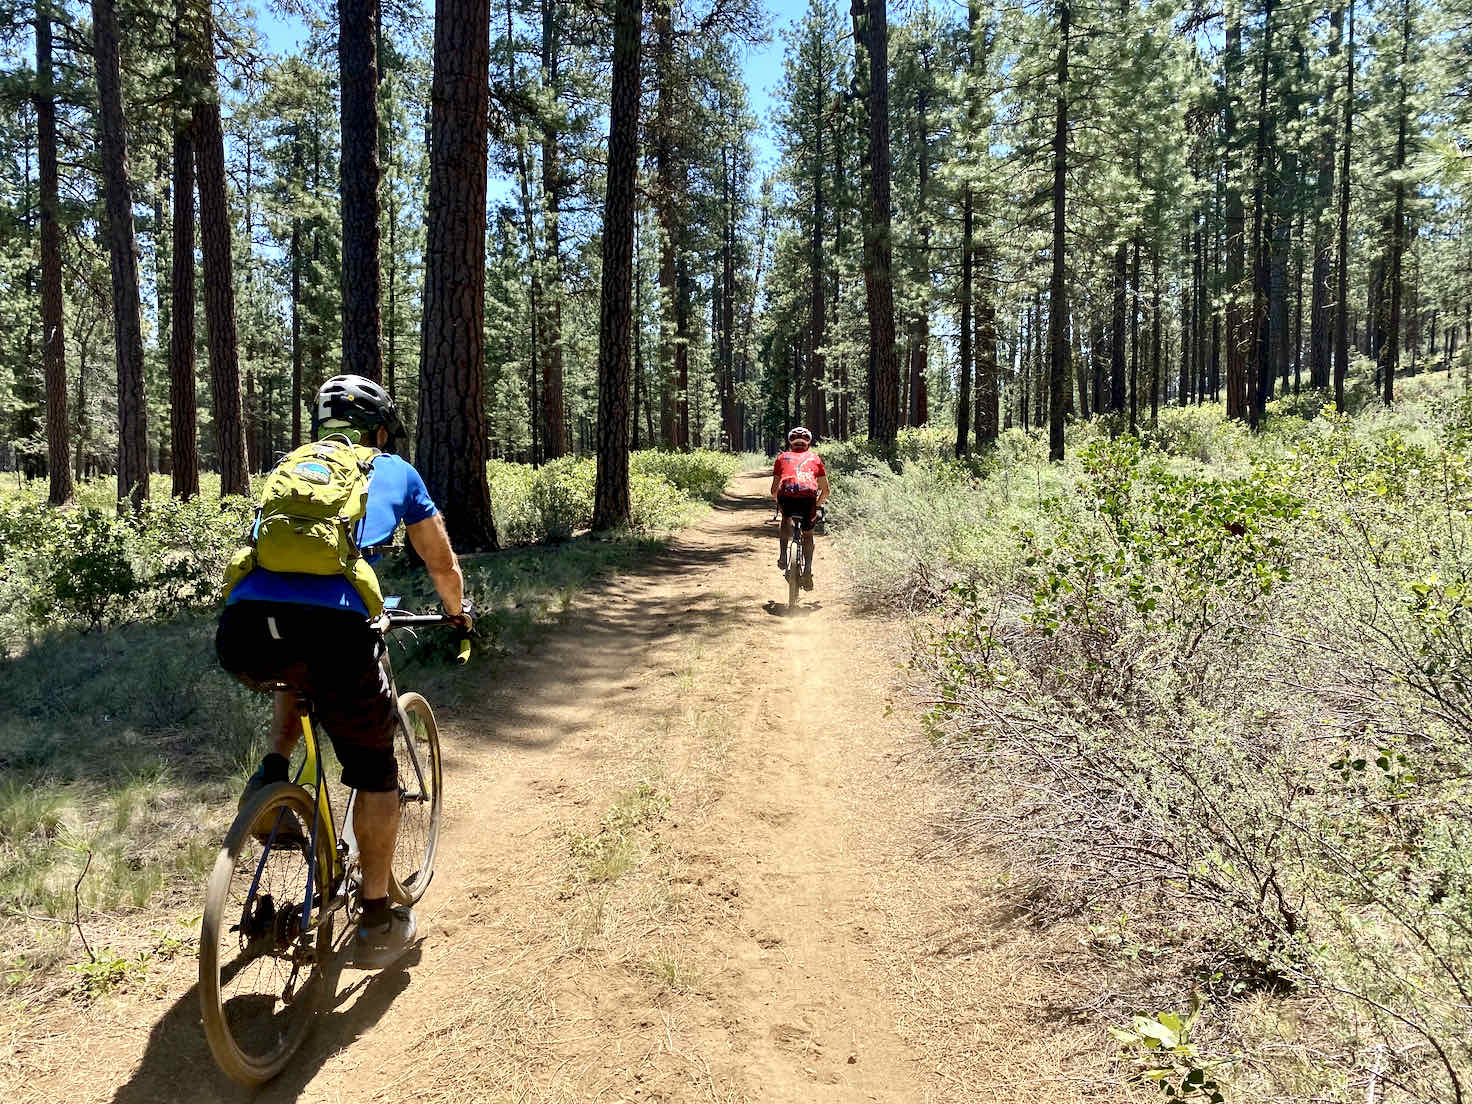 Two cyclists riding fast on smooth dirt road leading back to Sisters, OR.